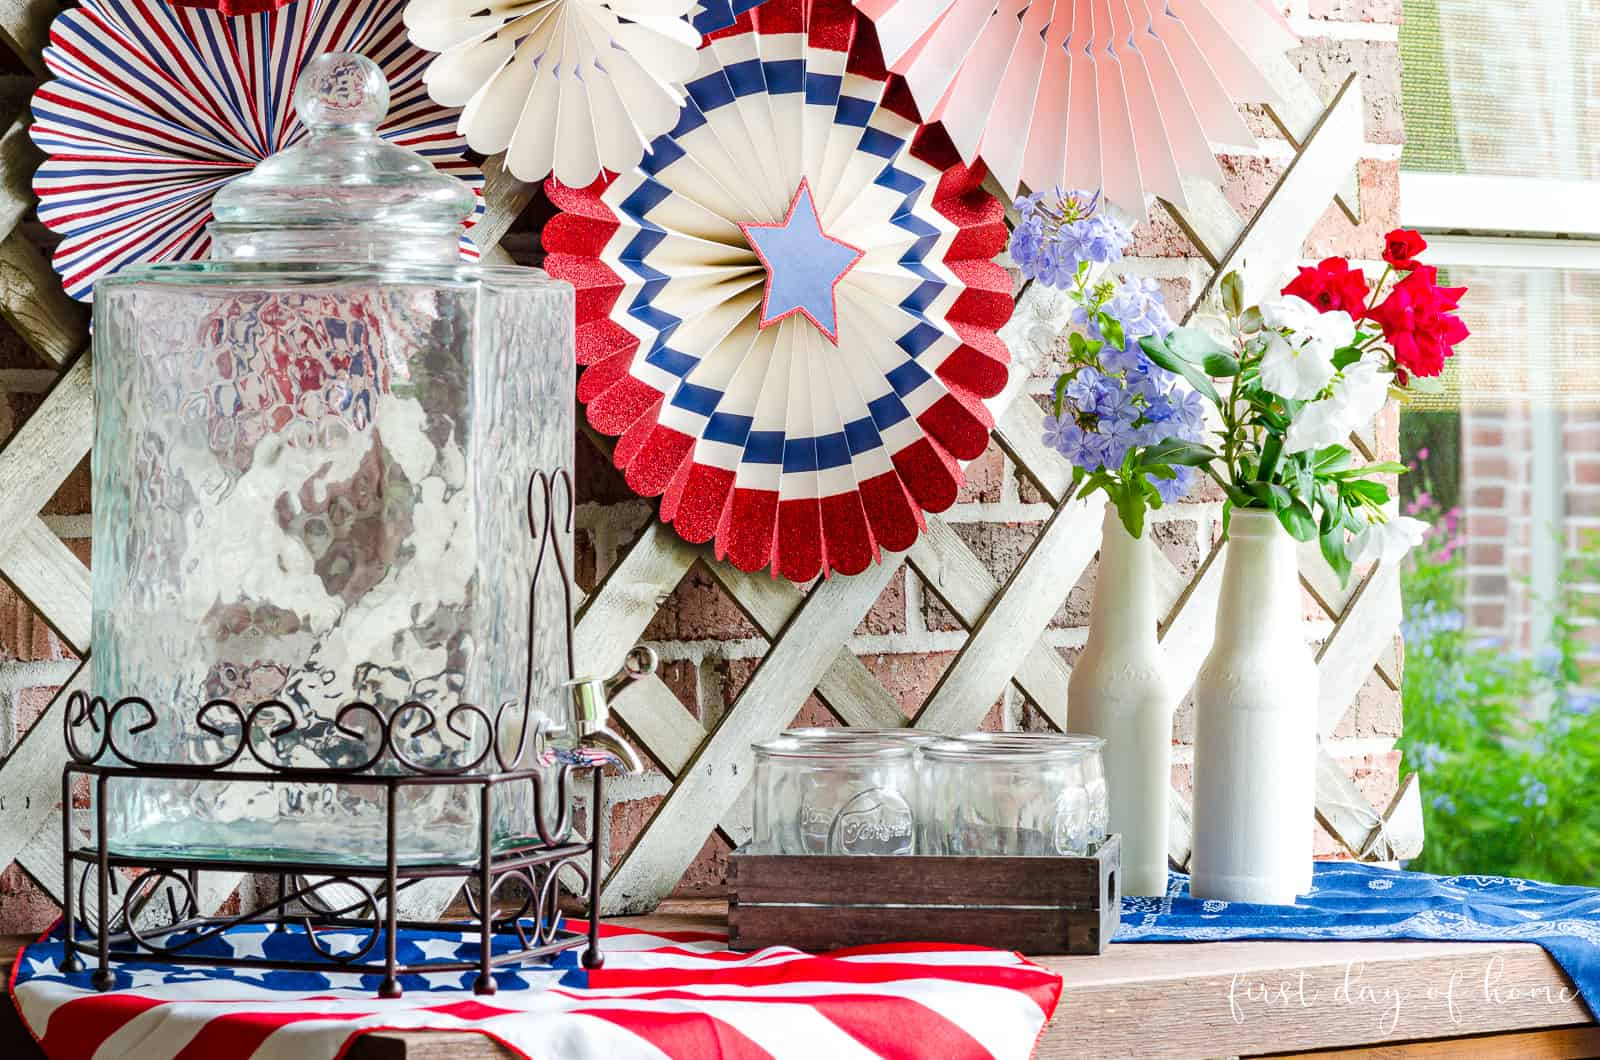 July 4th decorating ideas with paper fans and painted bottle vases